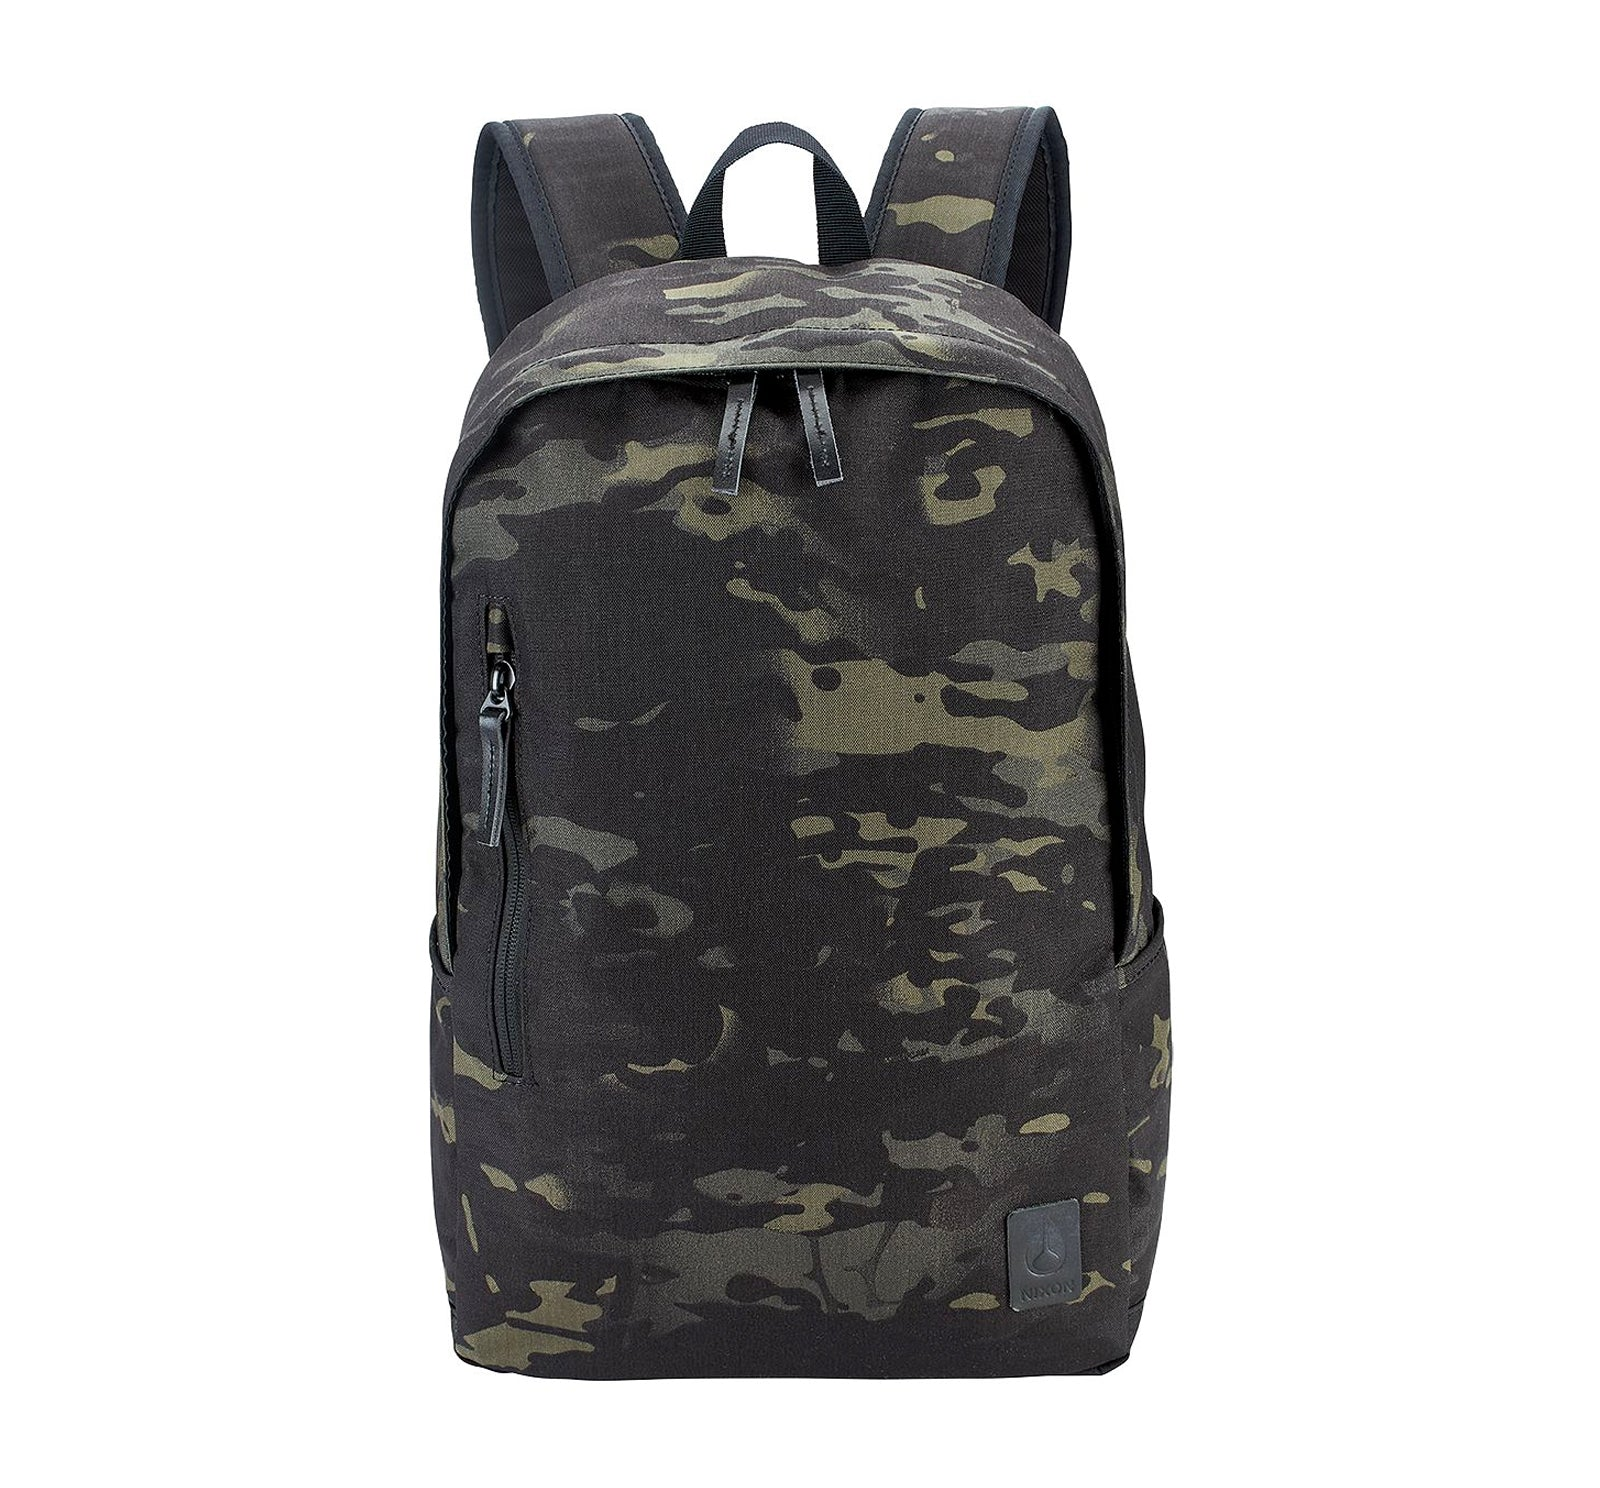 9e6d0d60aeee3 Nixon Smith SE II Men s Backpack - Black Multicam - Surf Station Store